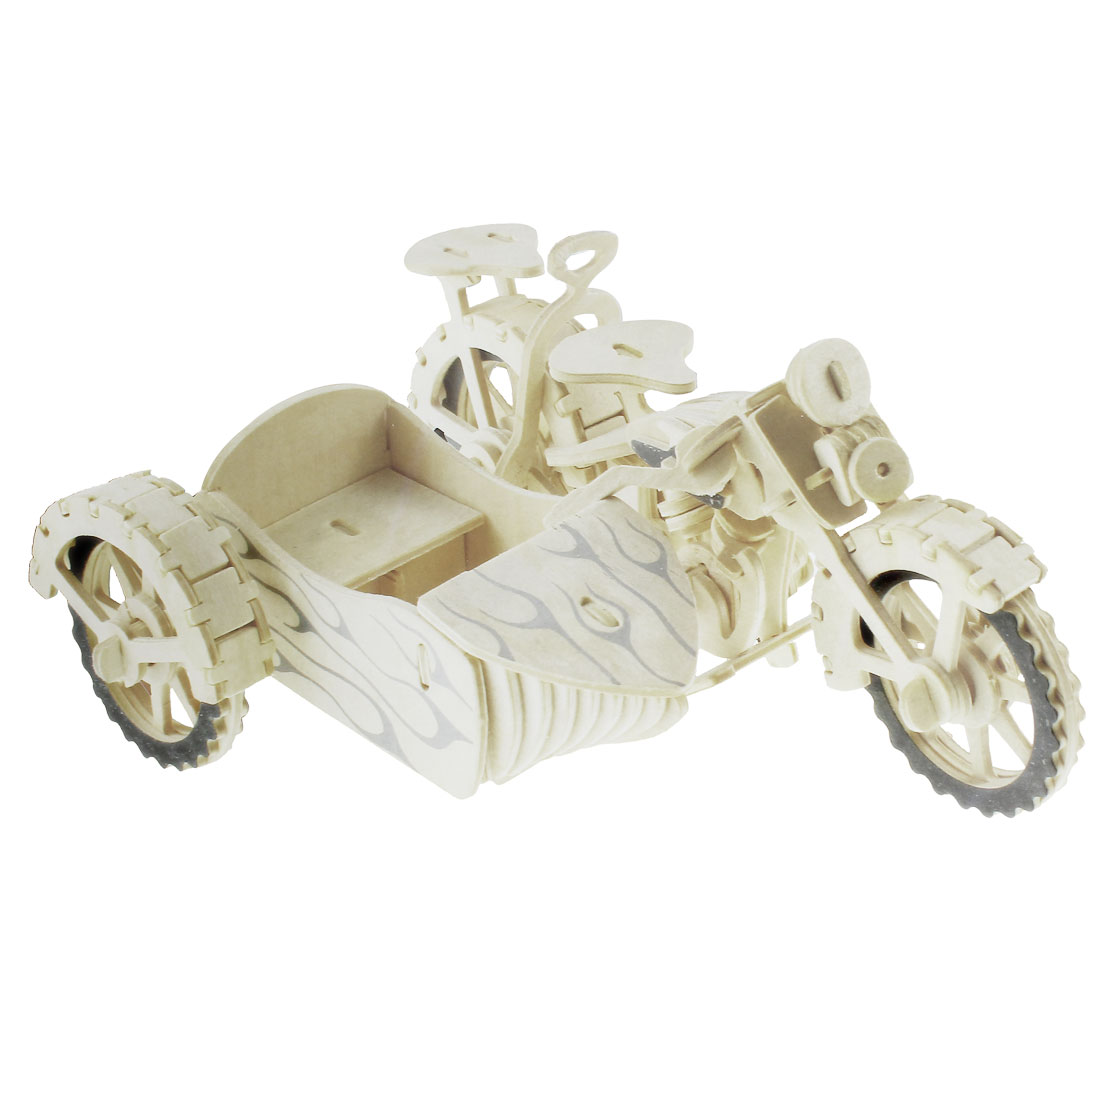 Creative Beige Cubic Cyclecar Model Wooden Puzzle Toy for Adults